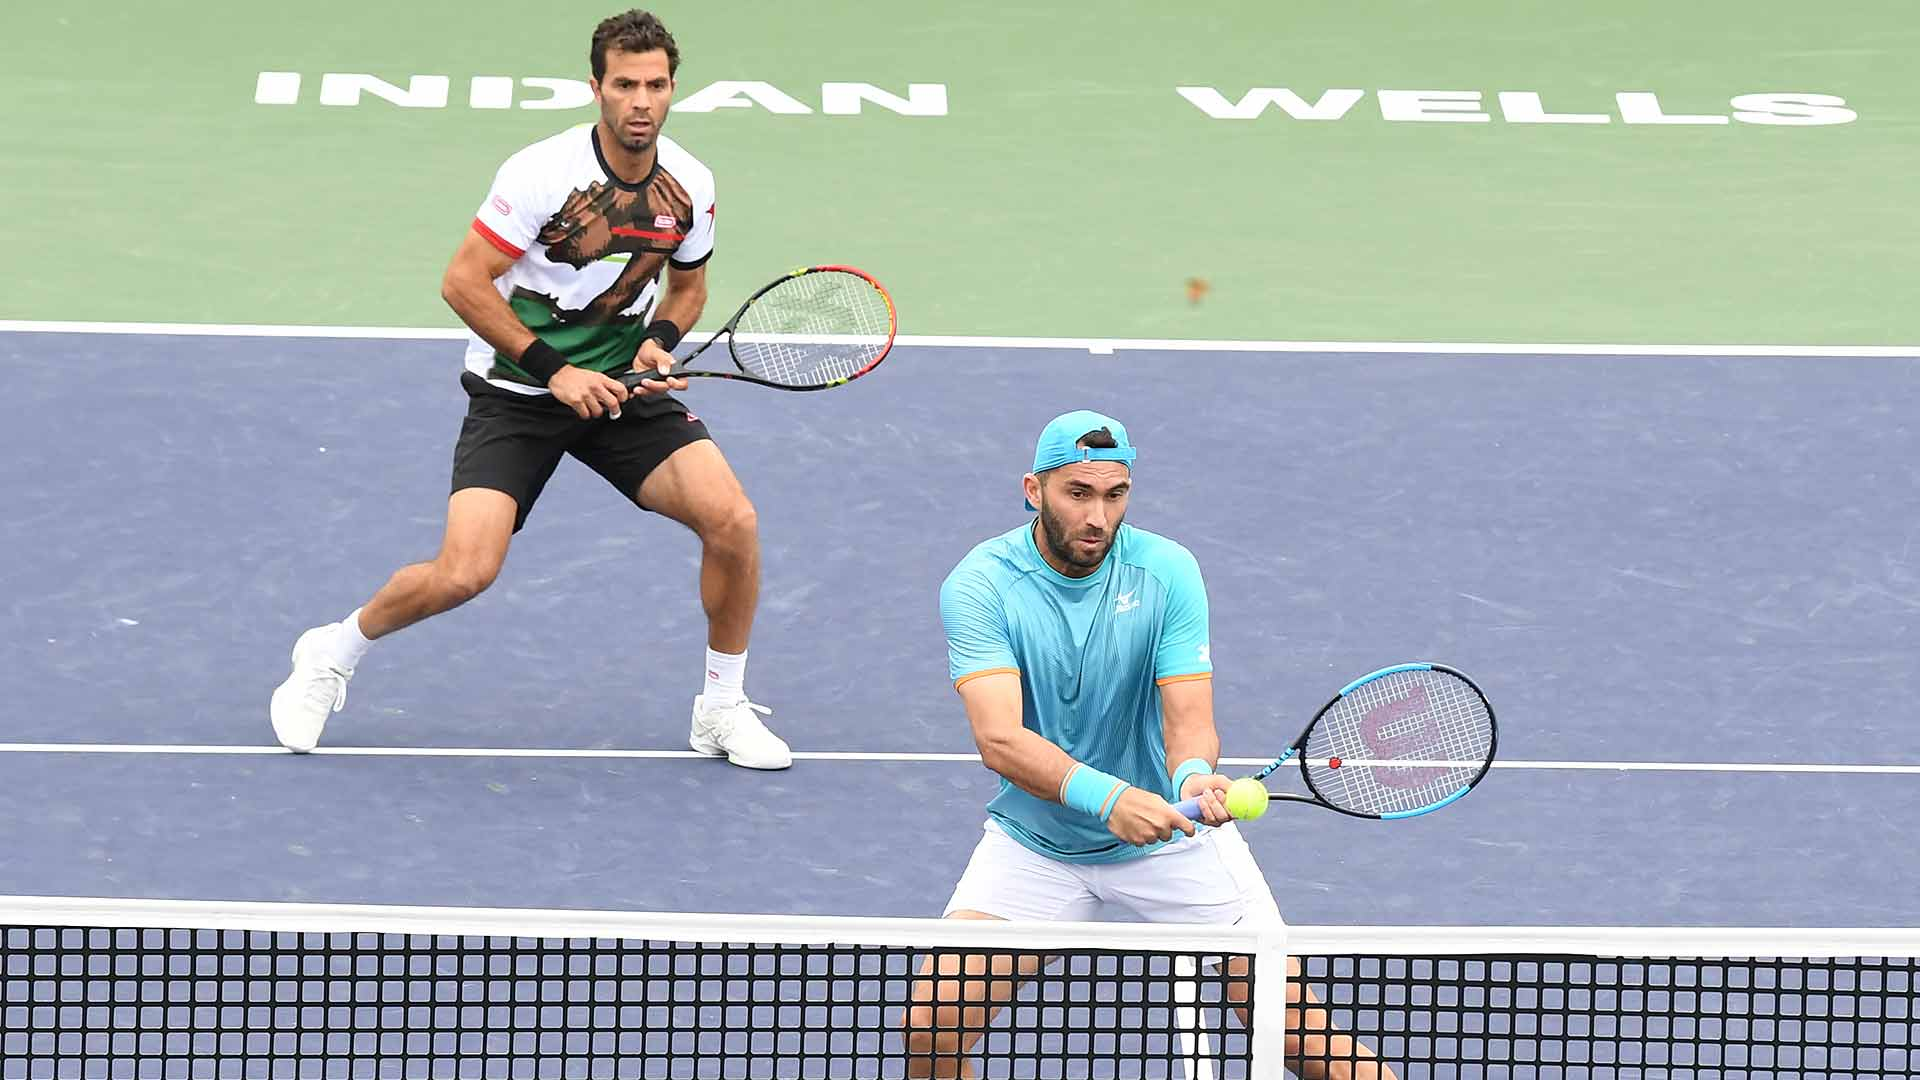 Rojer and Tecau advance on Monday at the BNP Paribas Open